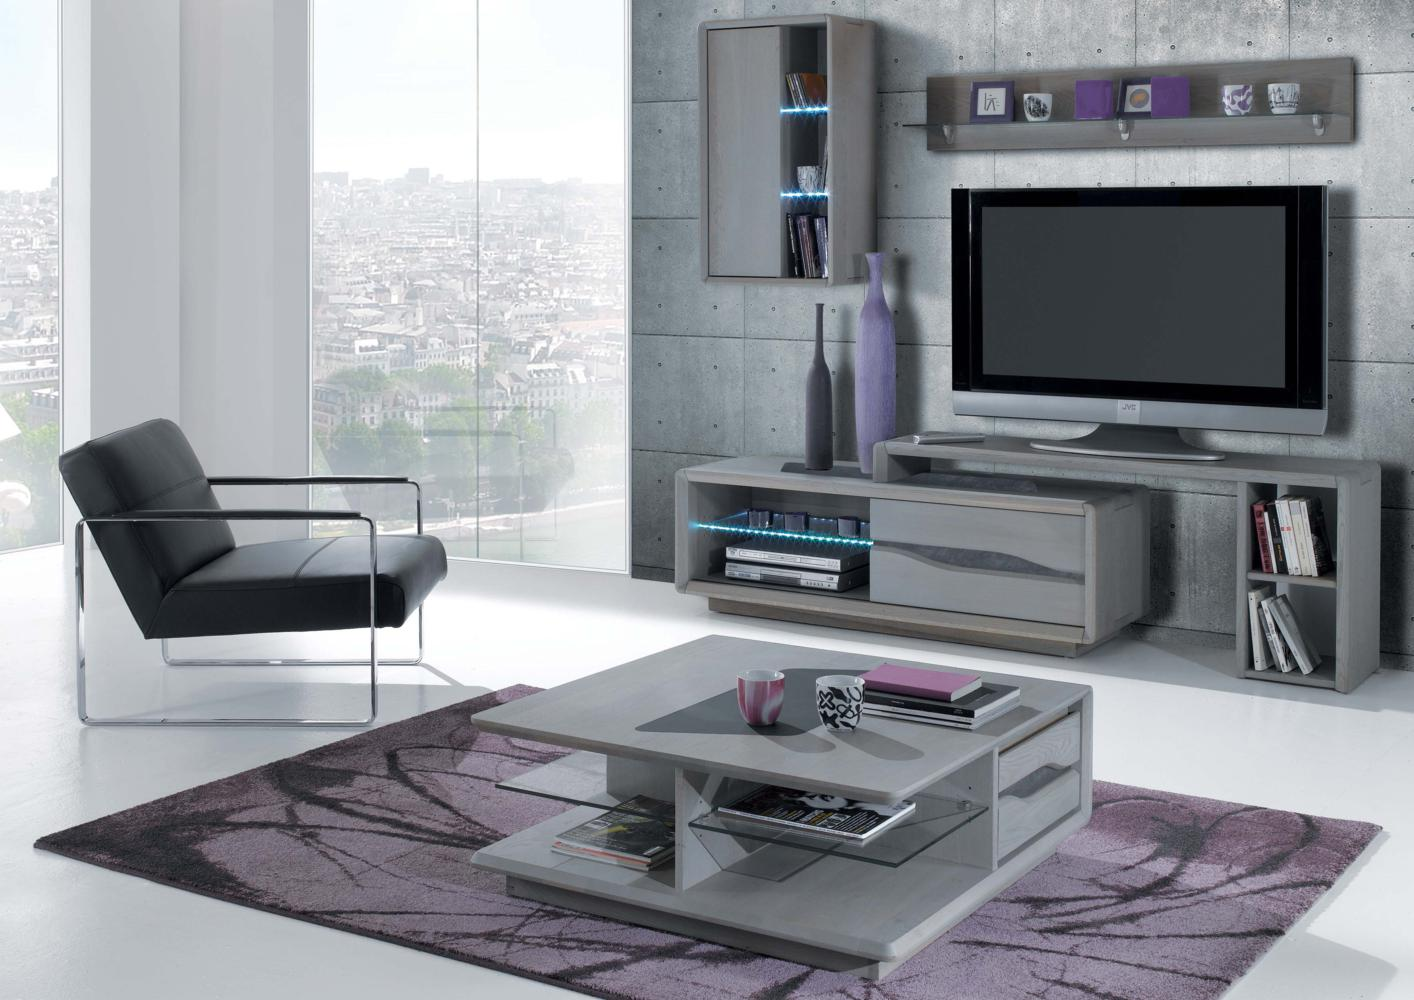 Meuble Tv Table Basse Assorti table basse 2 tiroirs 2 niches